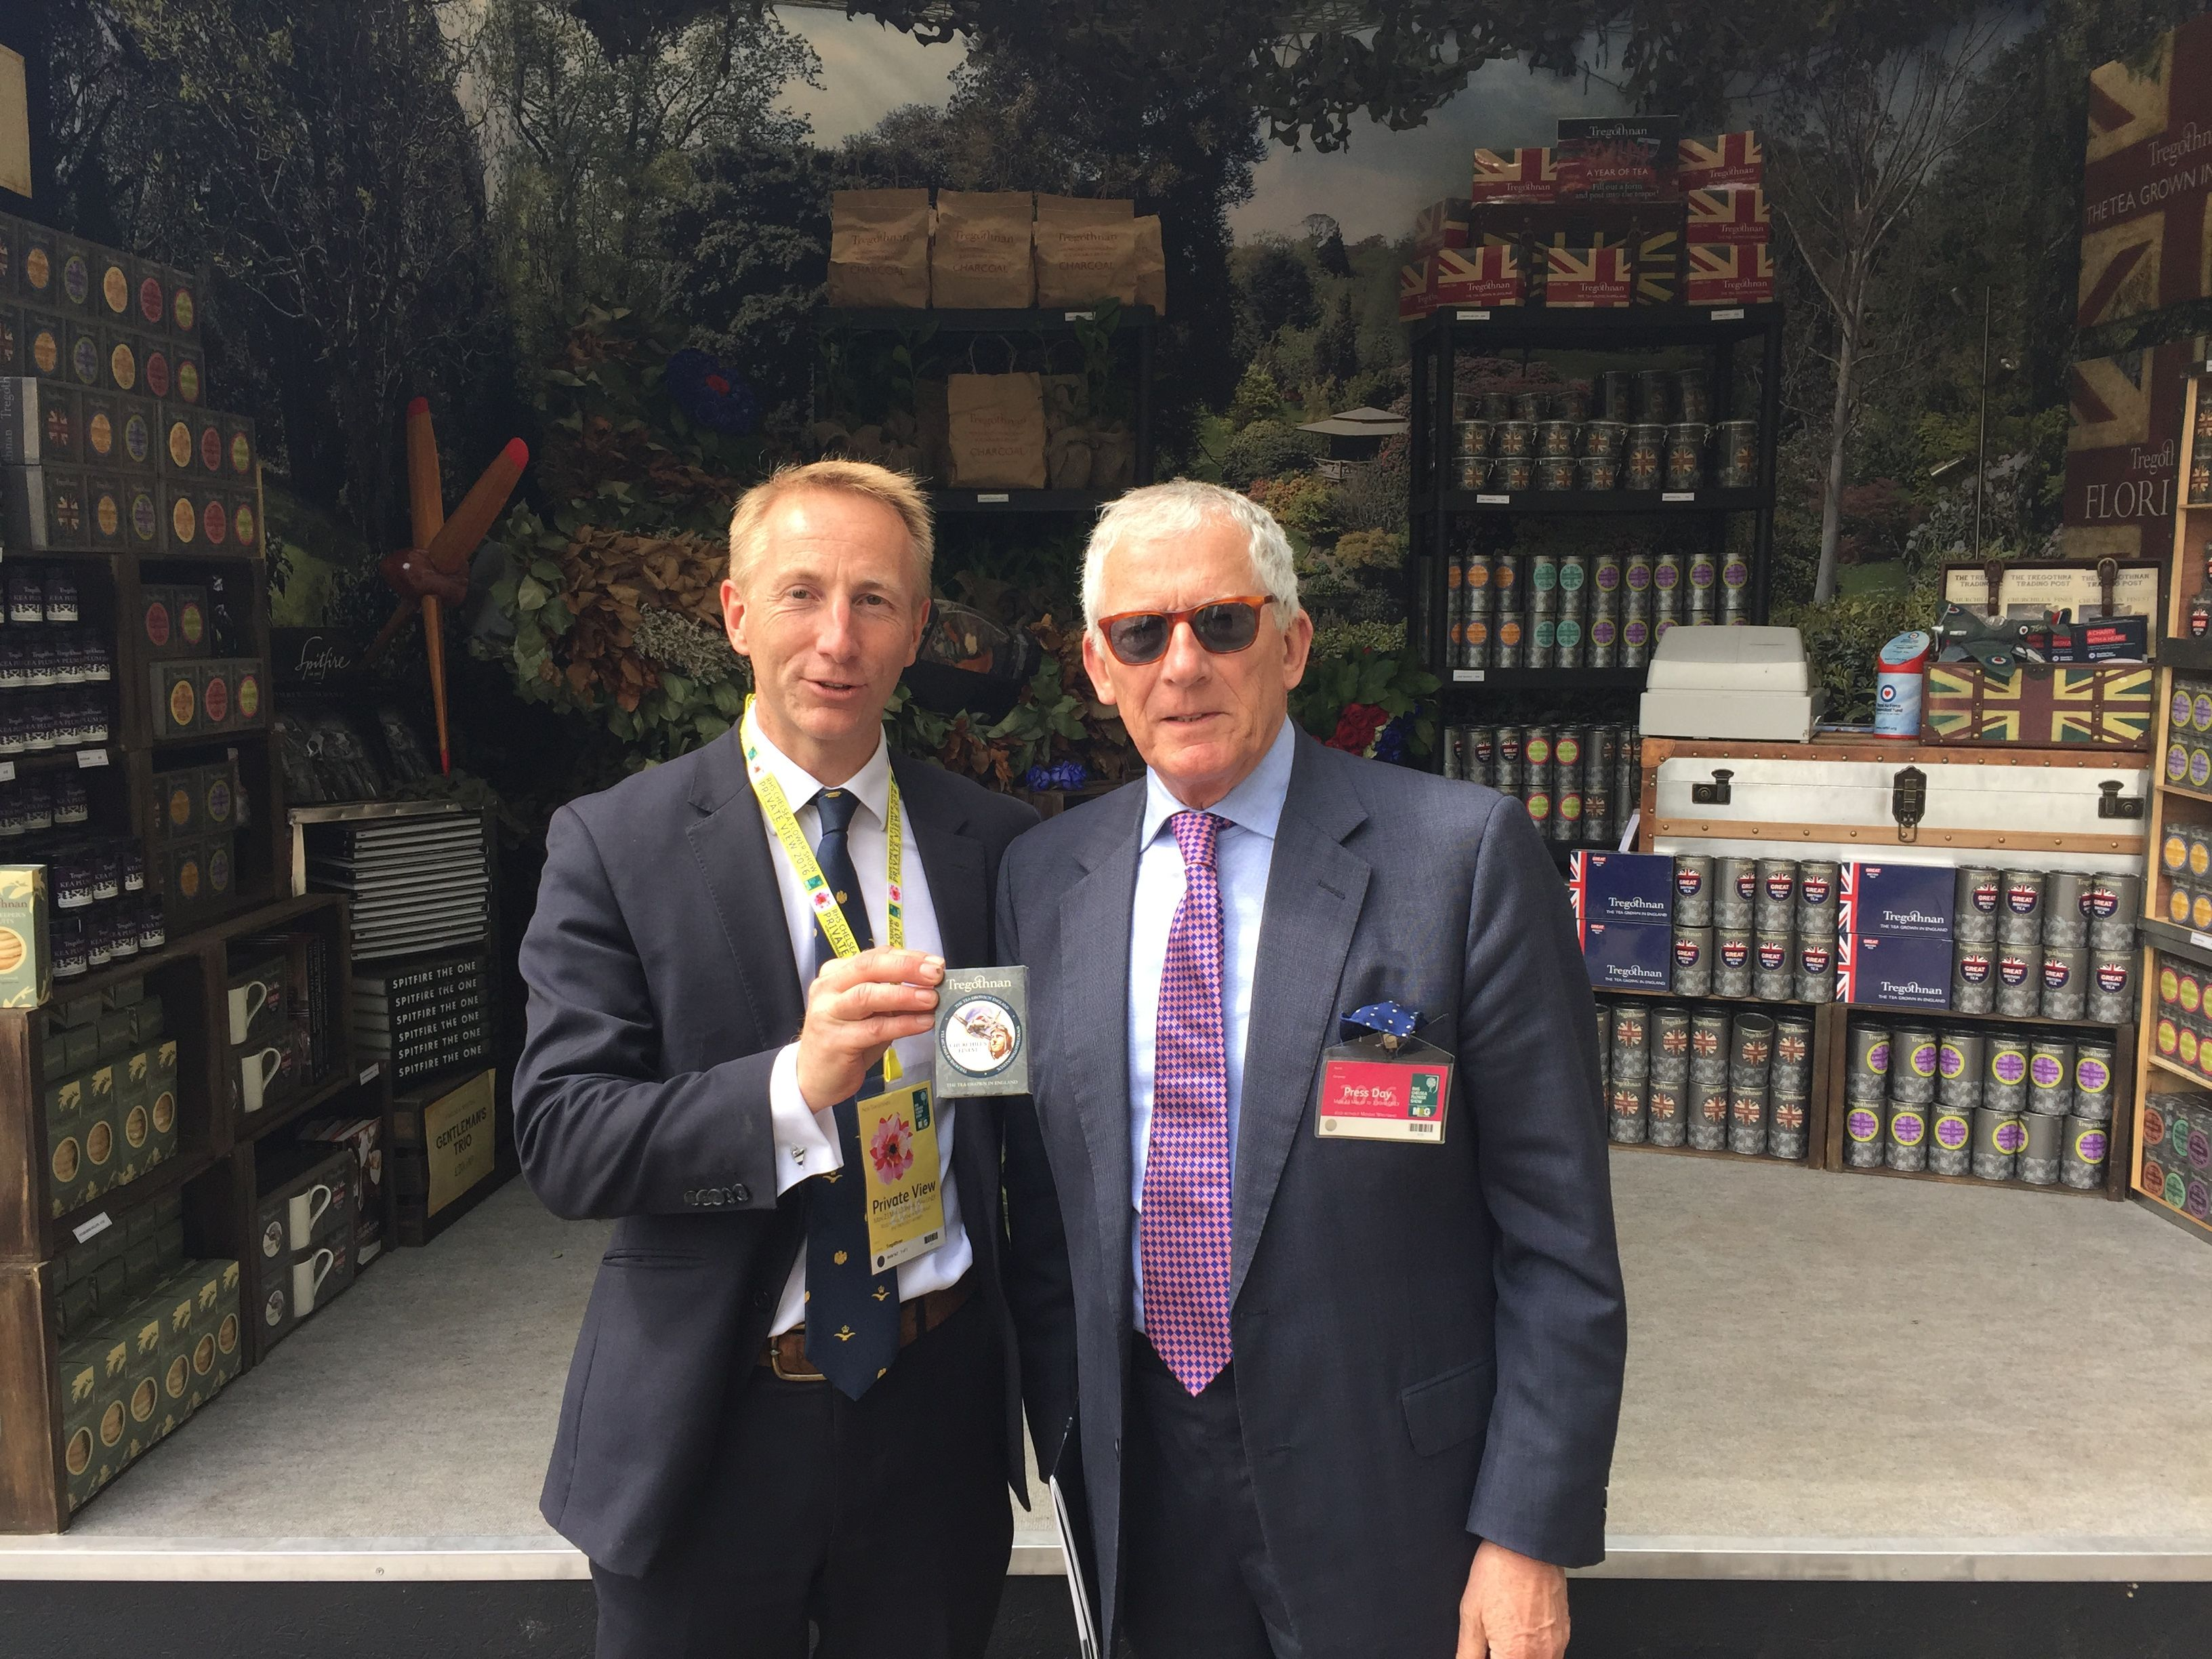 Countdown host Nick Hewer stops by the Tregothnan stand at the RHS Chelsea Flower Show.